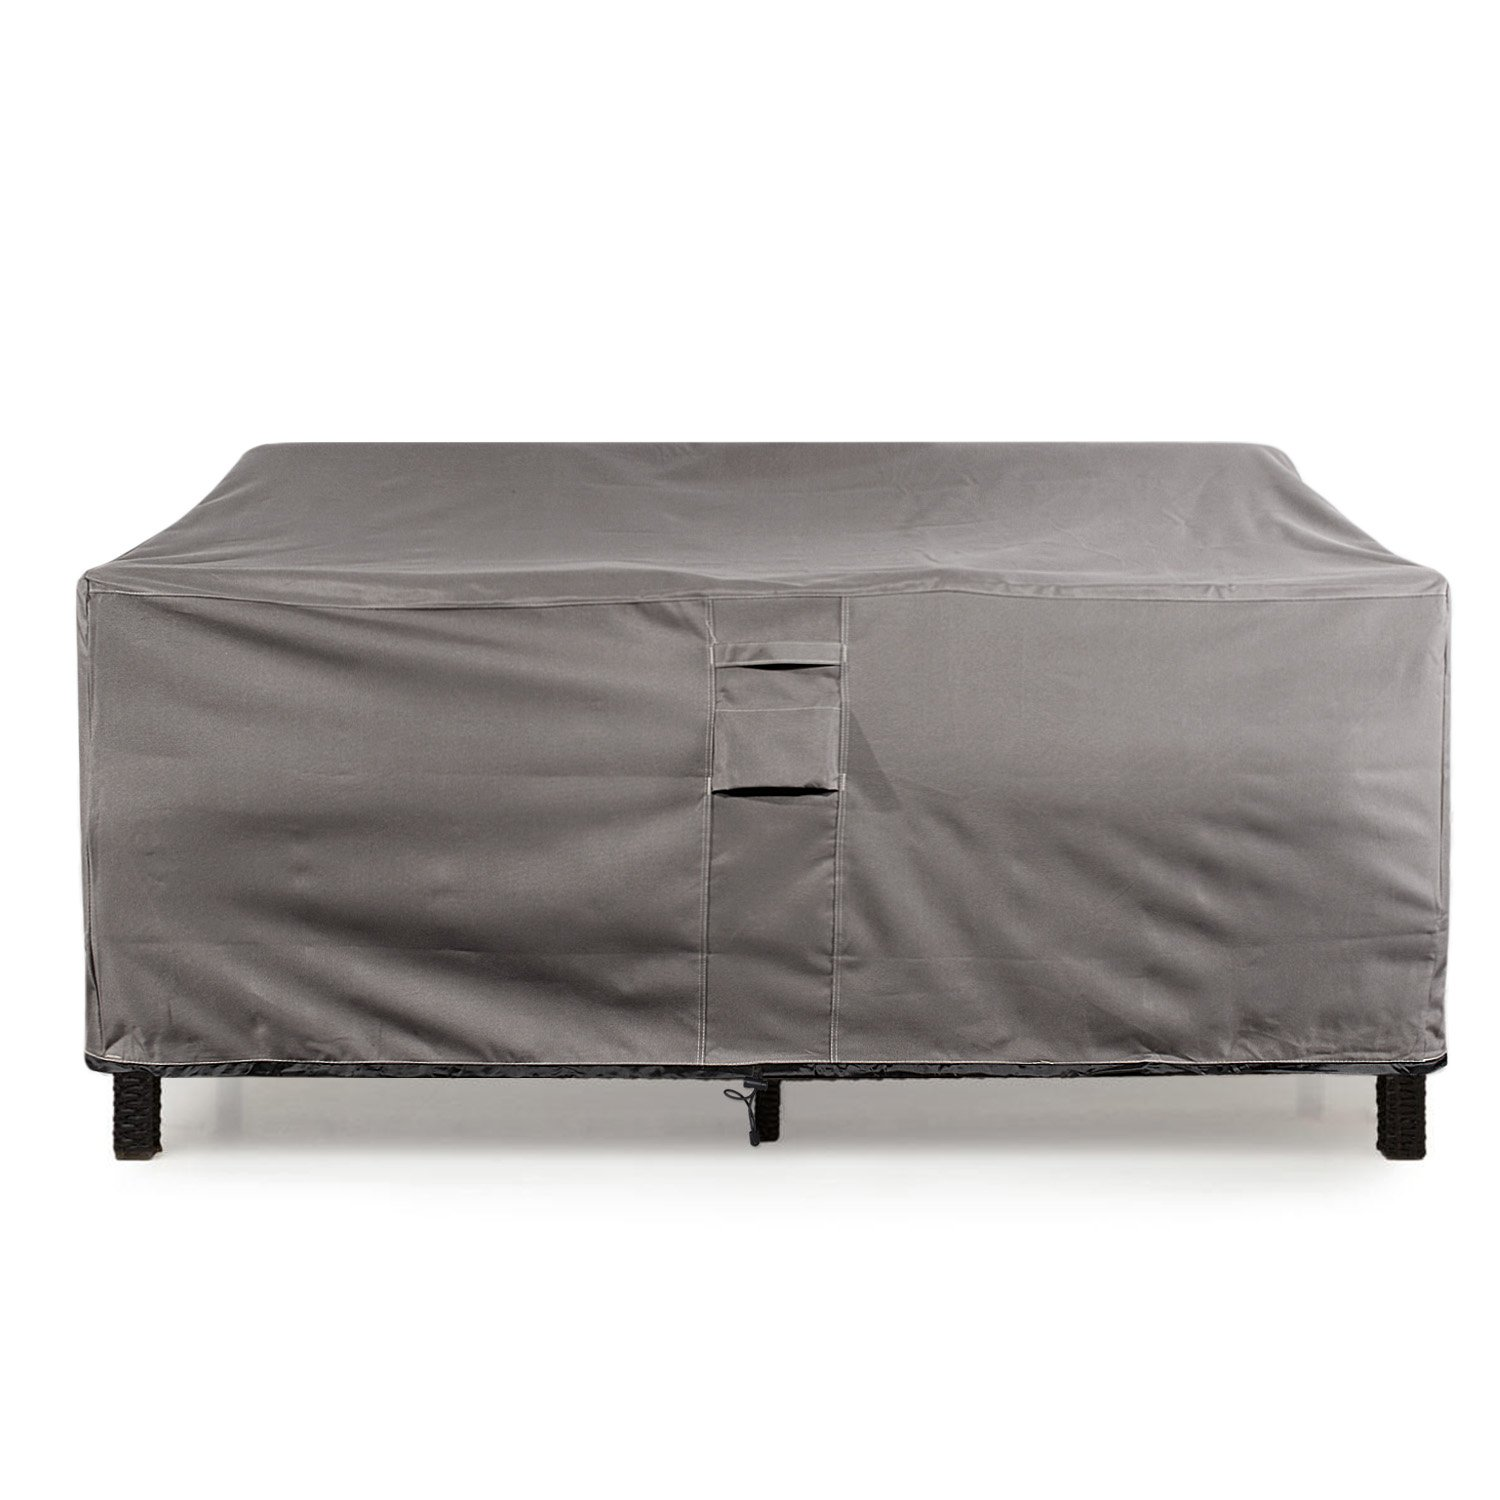 Waterproof Heavy Duty Outdoor Lounge Loveseat Sofa Cover